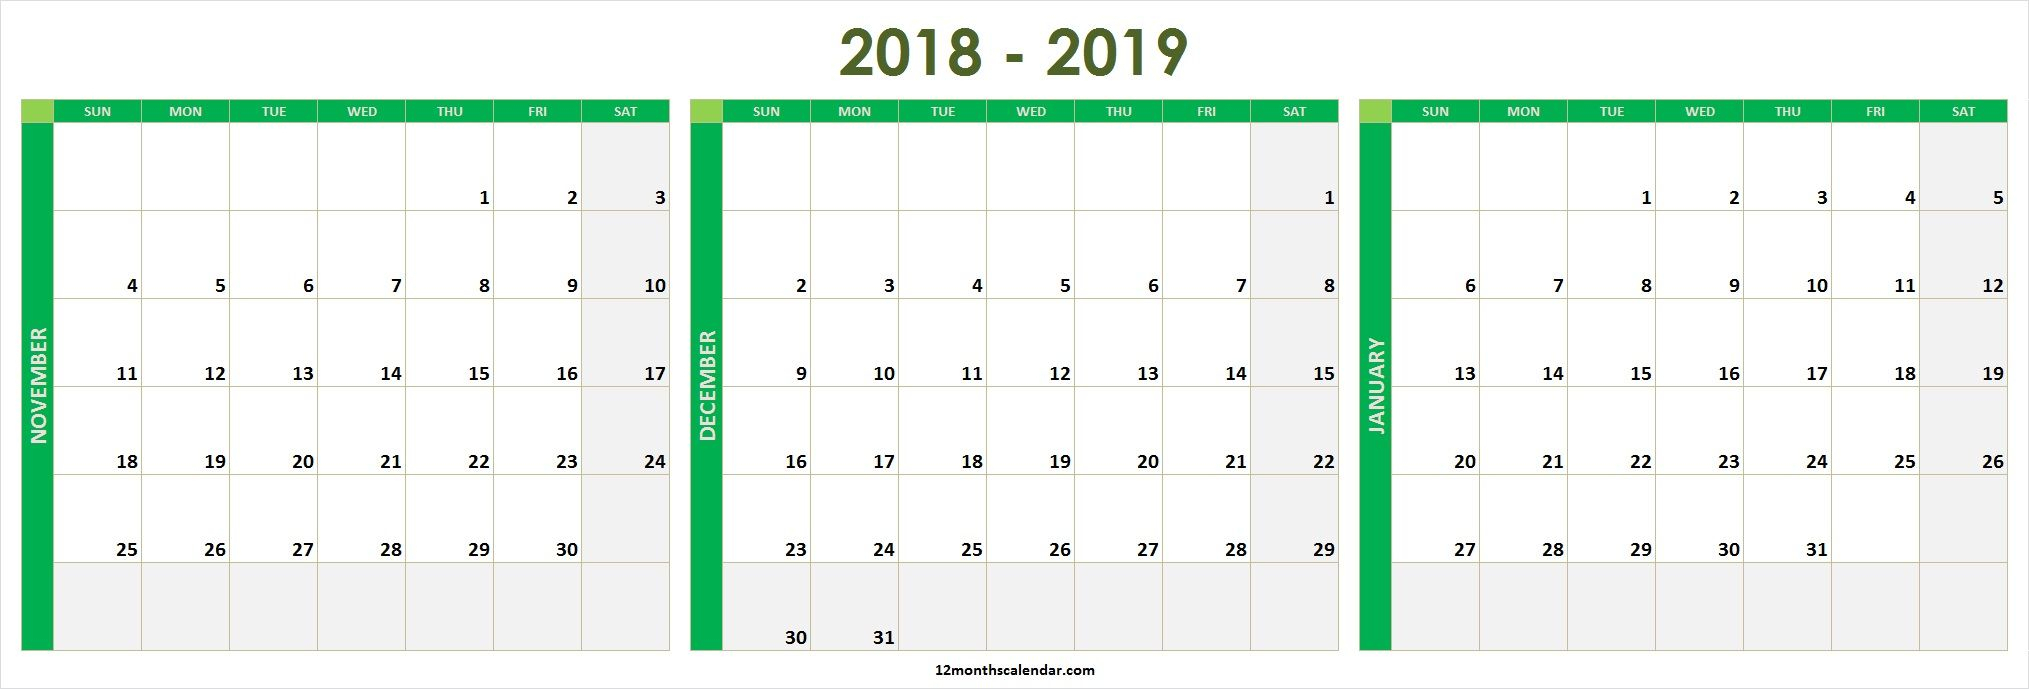 November December 2020 January 2021 Calendar Printable Free intended for Writable December 2020 Calendar